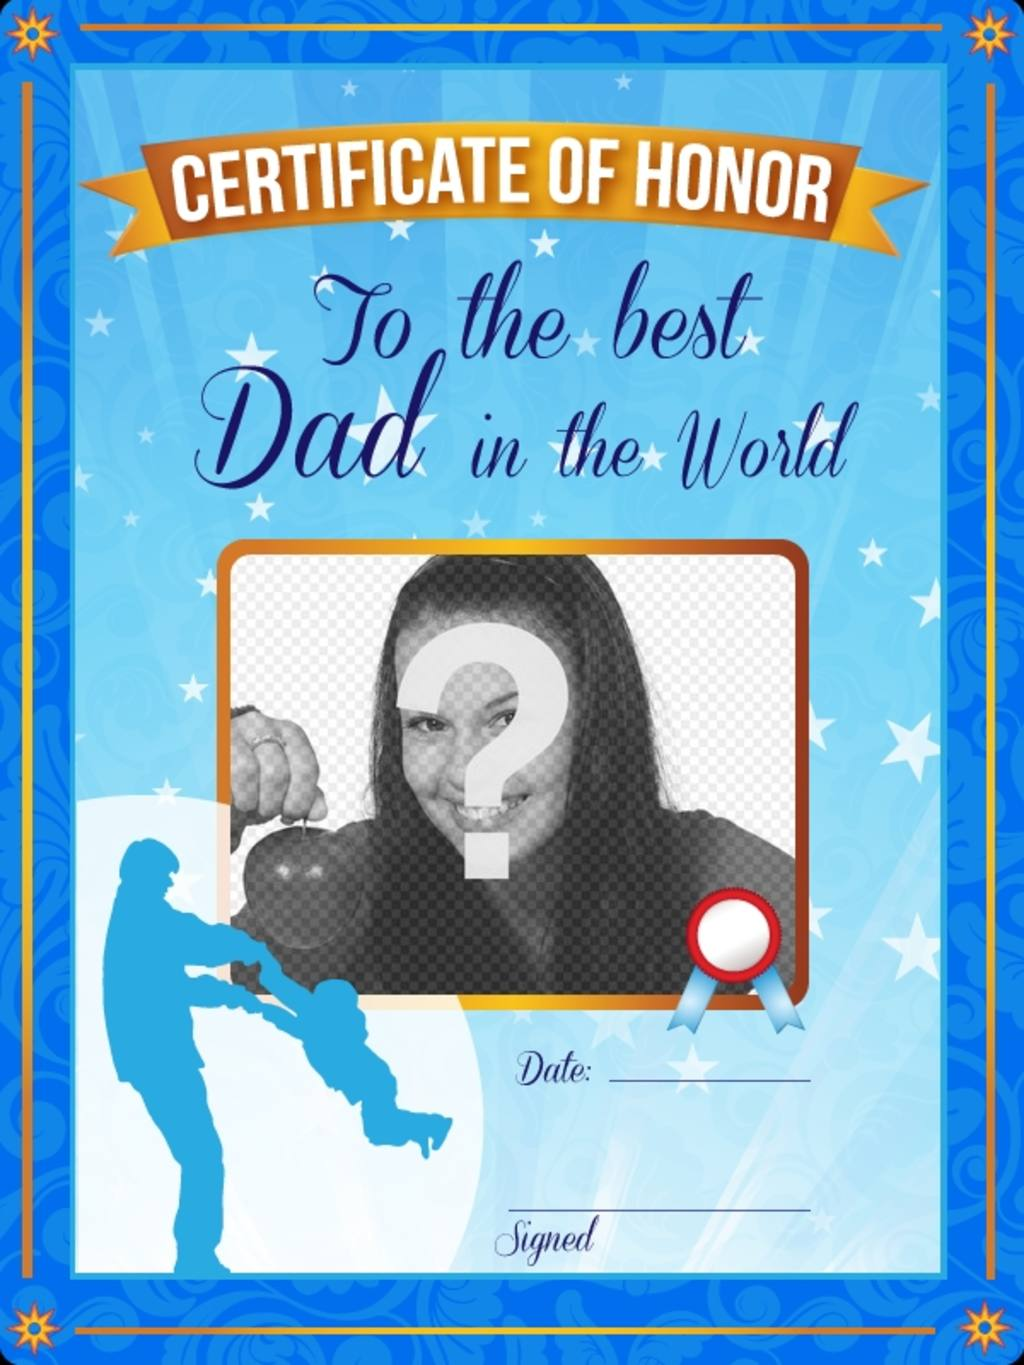 Certificate of honor to the best father in the world. A personalized blue certificate with a photo and text